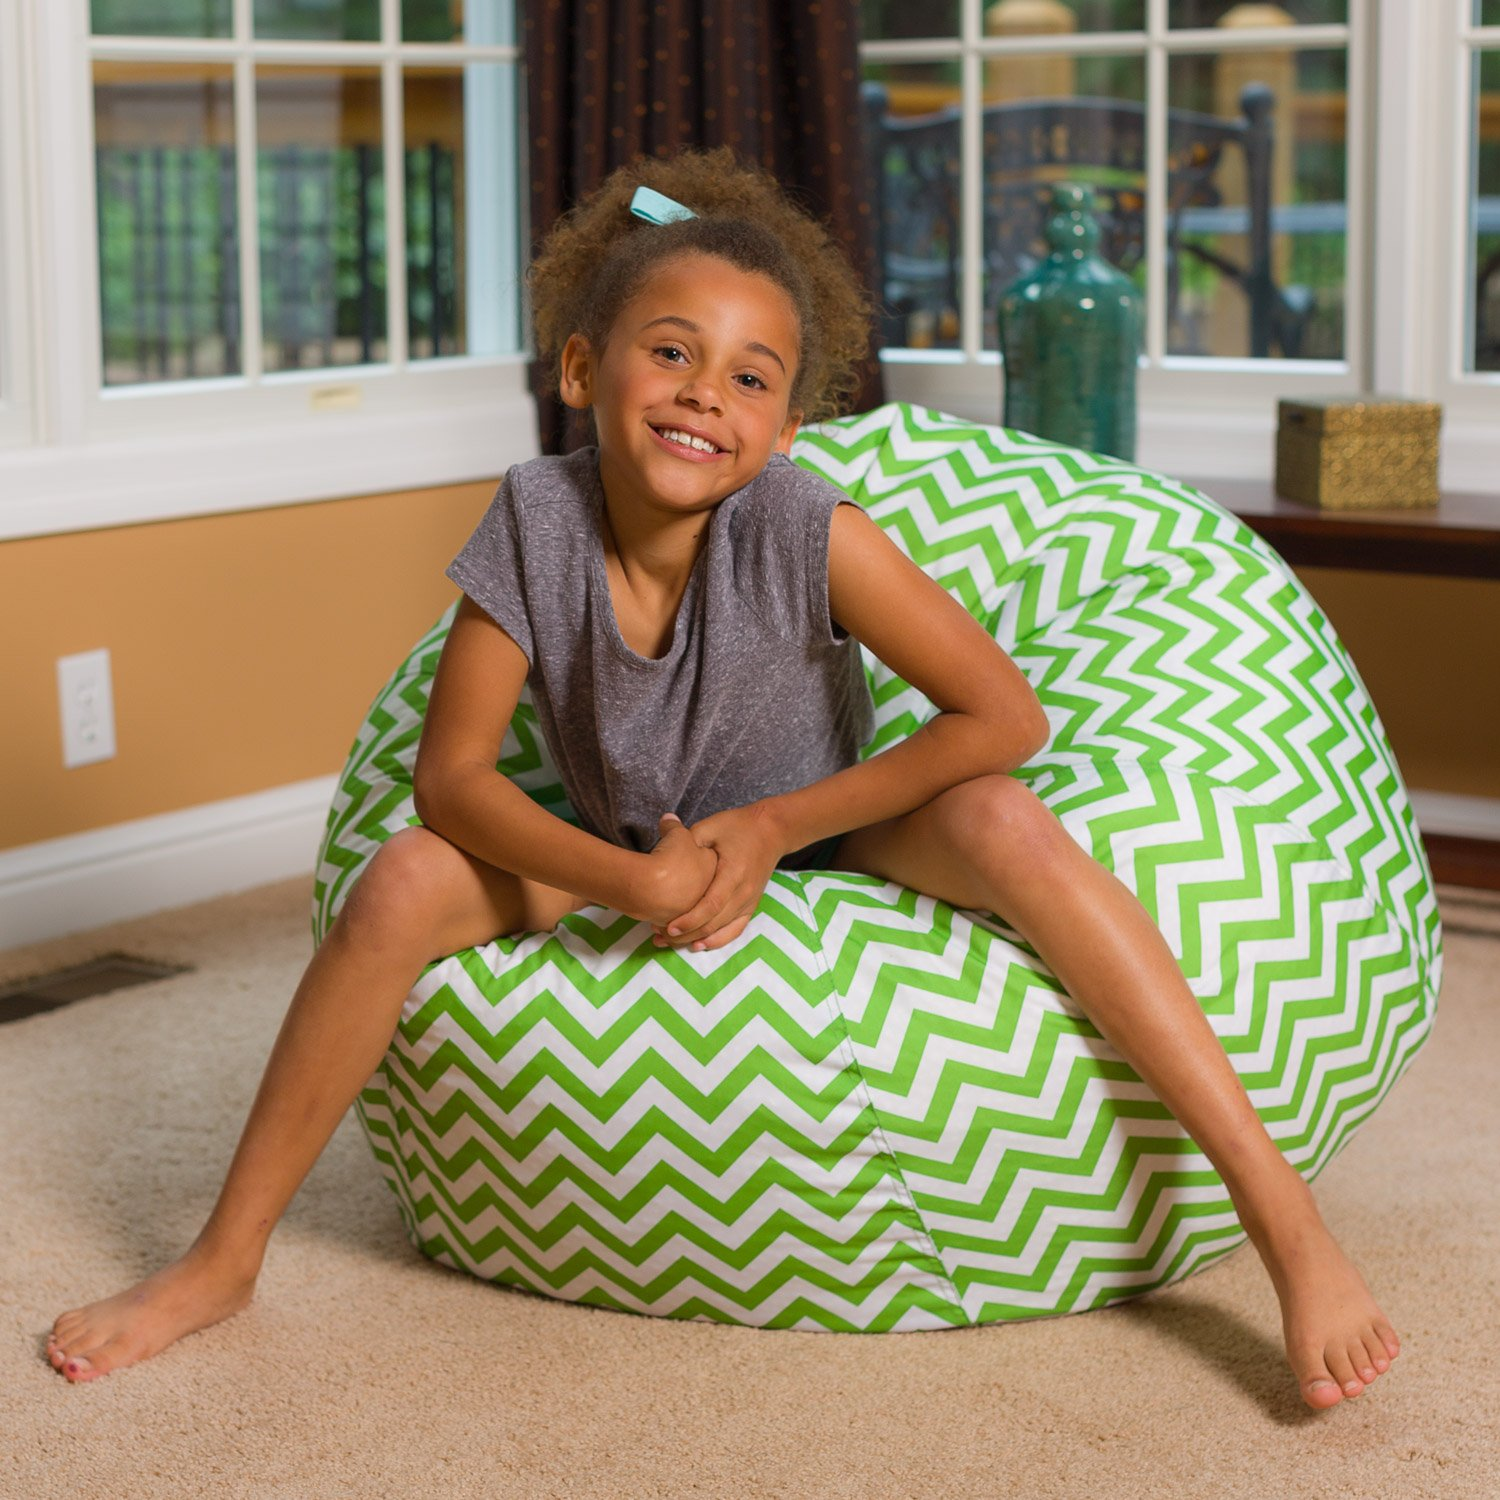 Big Comfy Bean Bag Chair: Posh Large Beanbag Chairs for Kids, Teens and Adults - Polyester Cloth Puff Sack Lounger Furniture for All Ages - 27 Inch - Chevron Green and White by Posh Beanbags (Image #4)